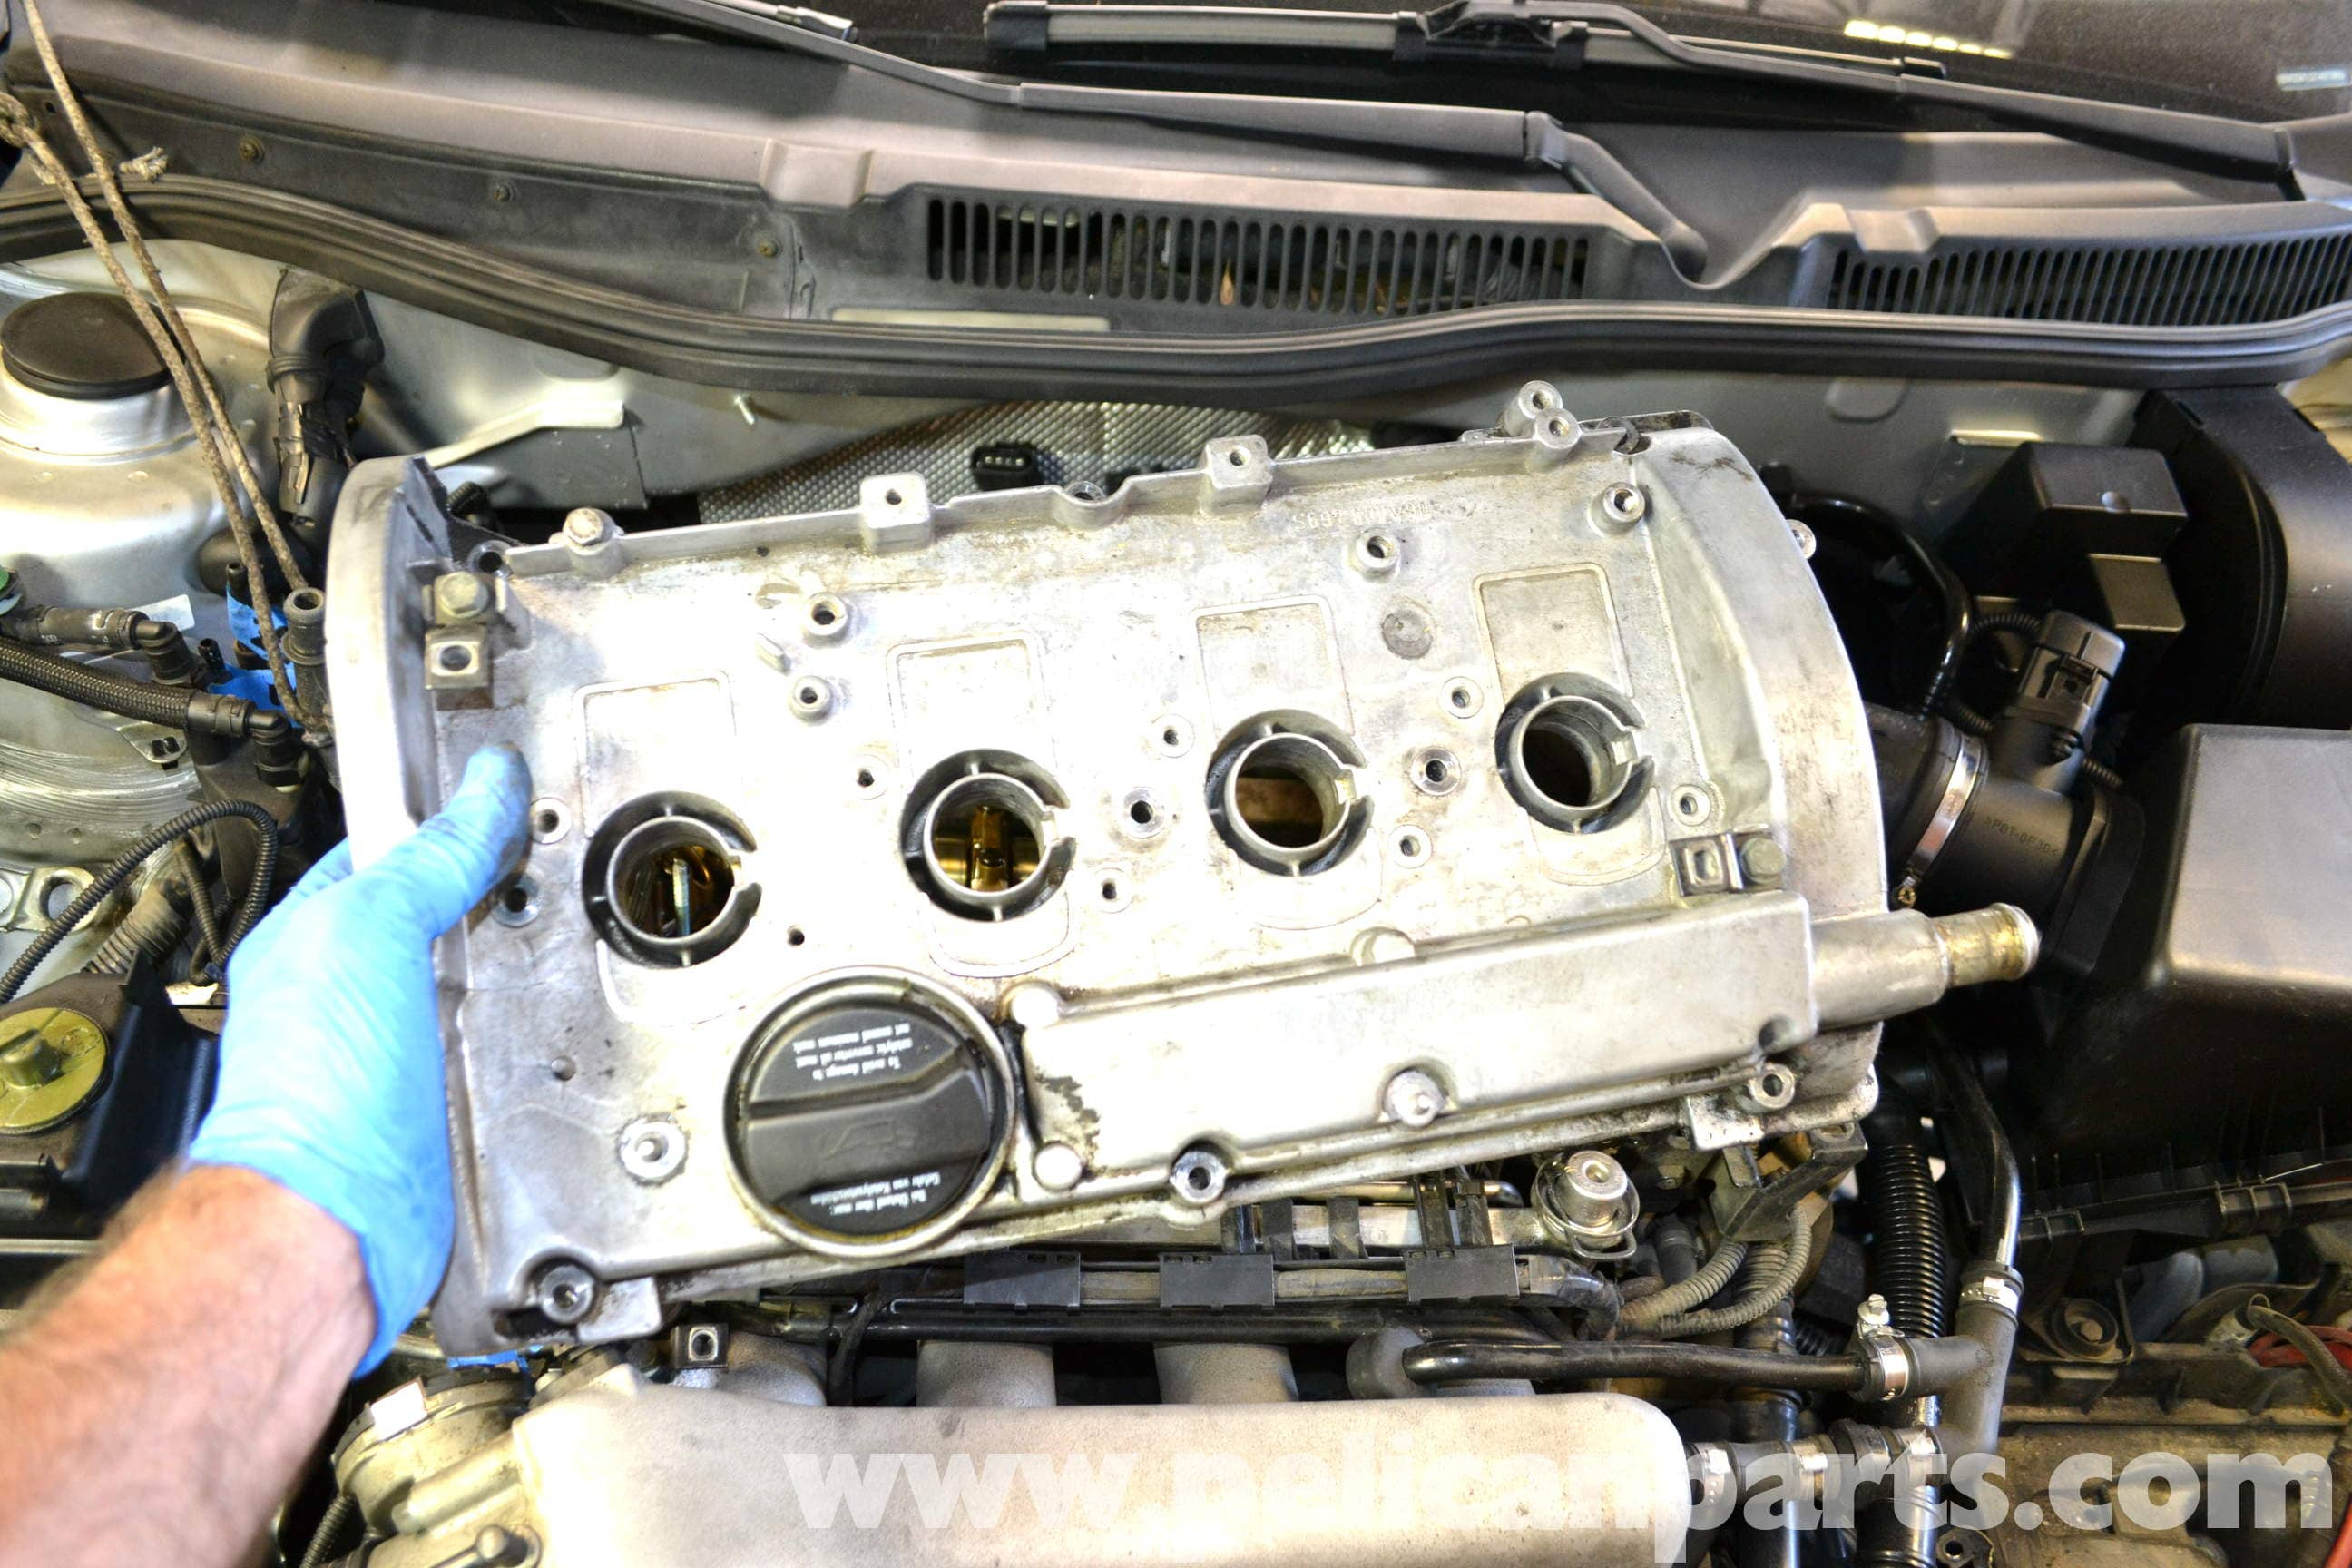 Volkswagen Golf GTI Mk IV Valve Cover Gasket Replacement (1999-2005 ...